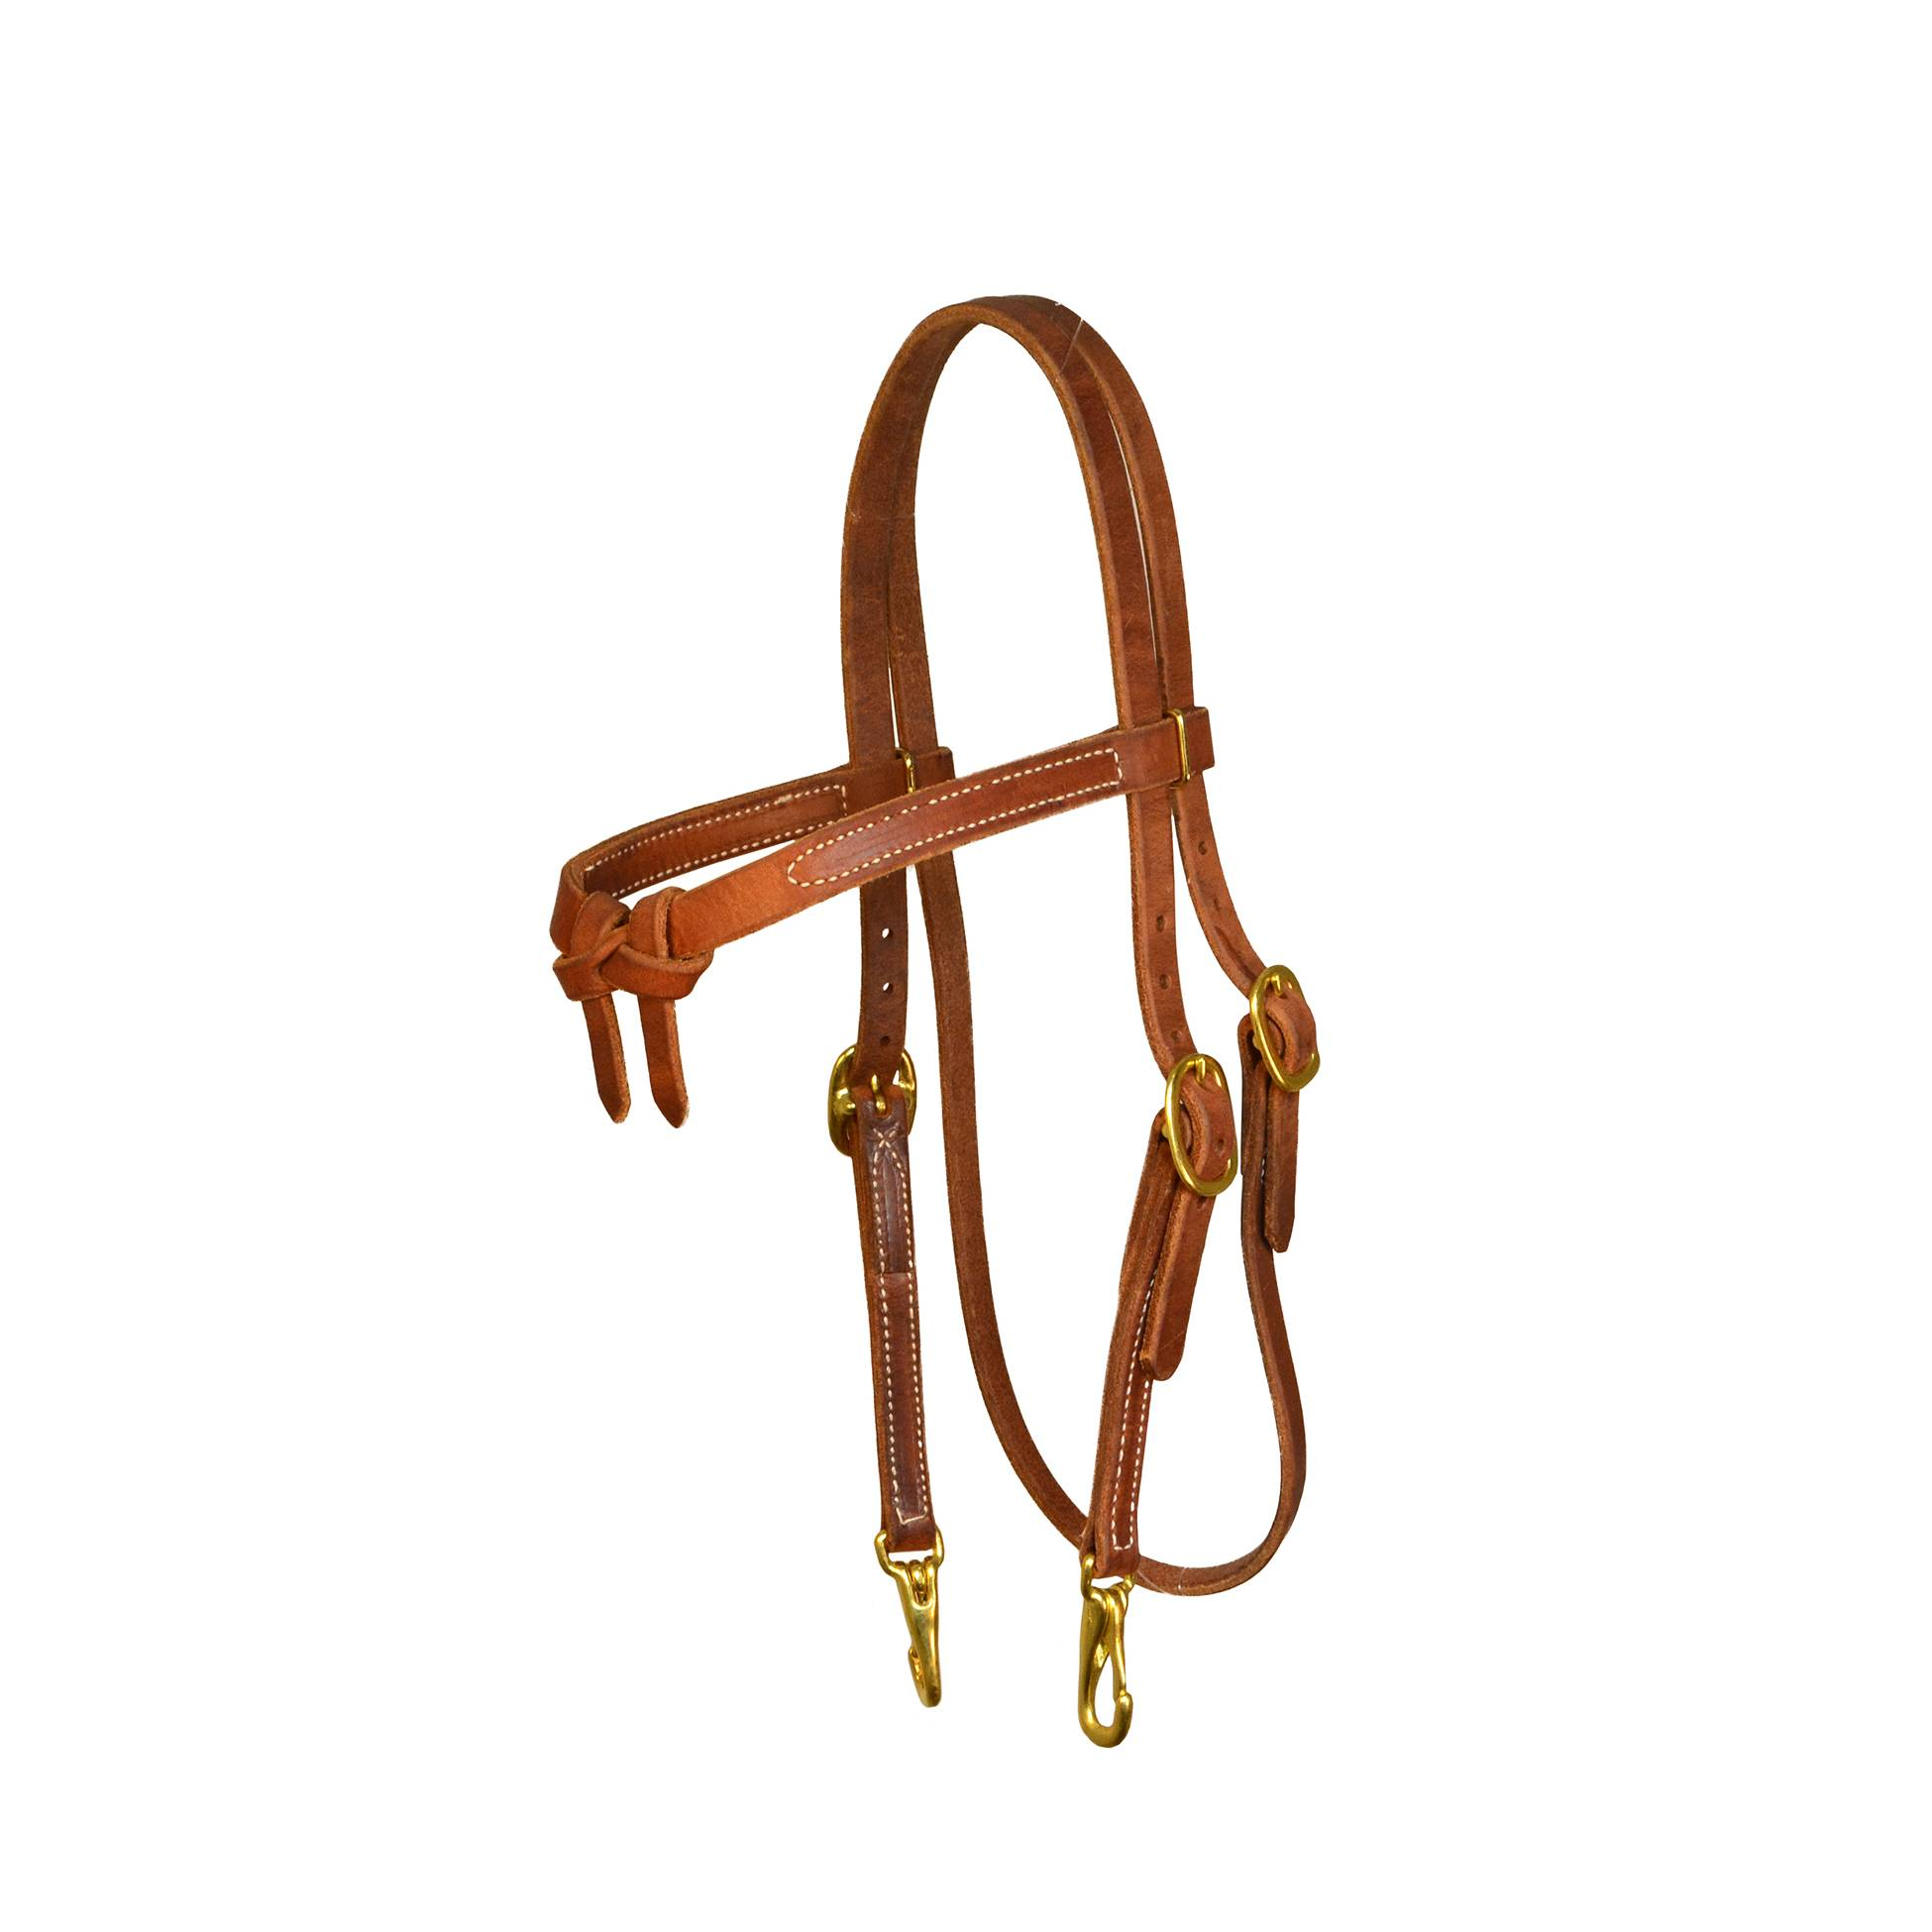 Perri's Knotted Browband Headstall